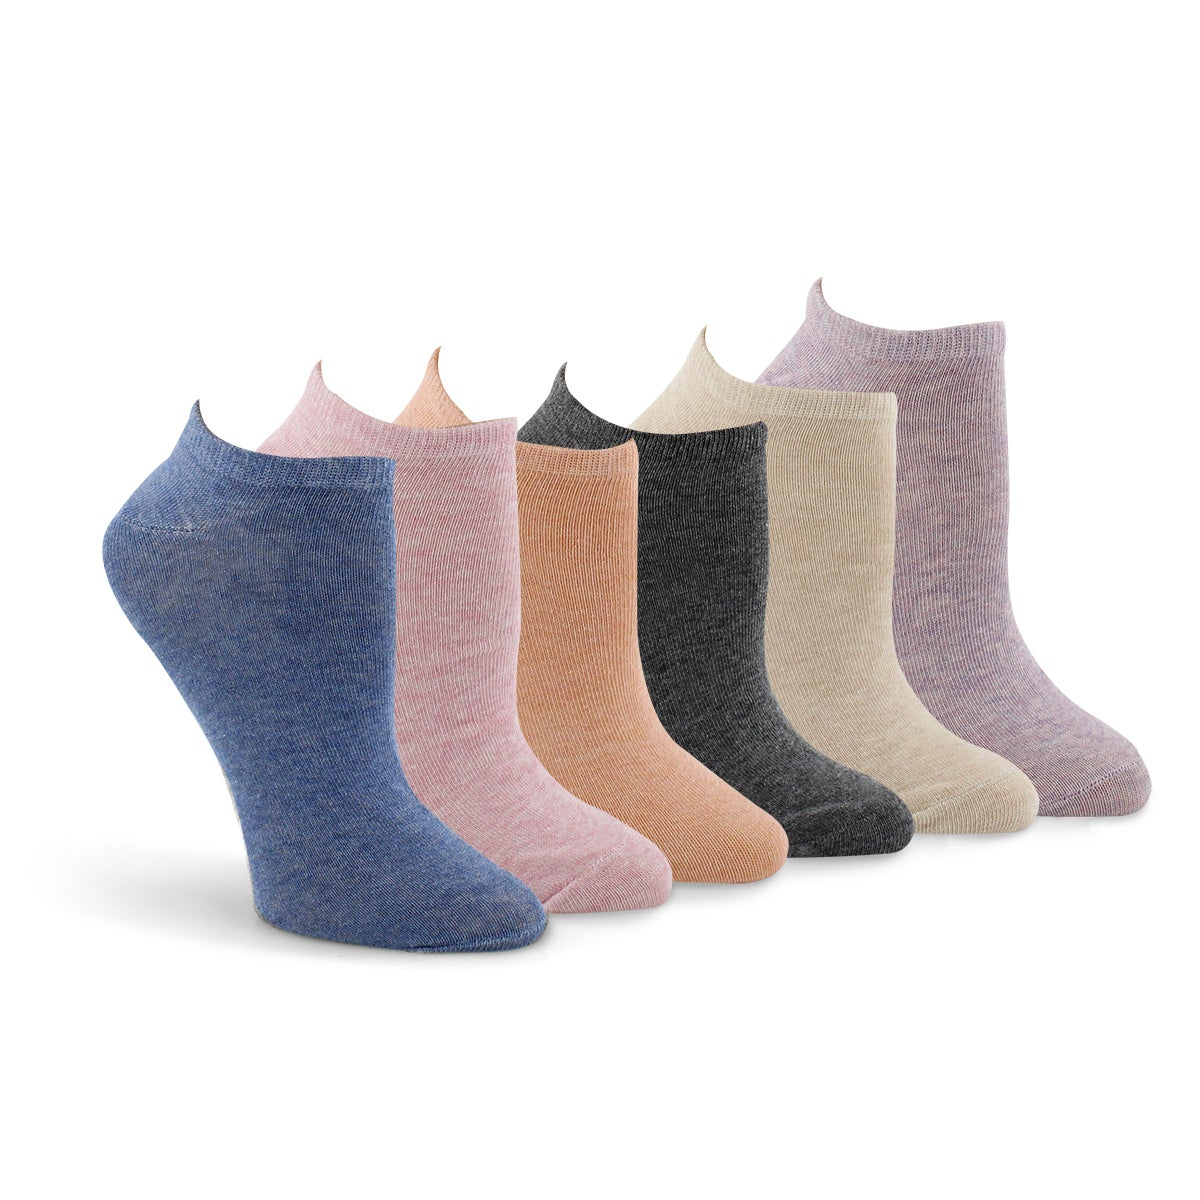 Lds Solid Low Show mlti ankle sock- 6 pk